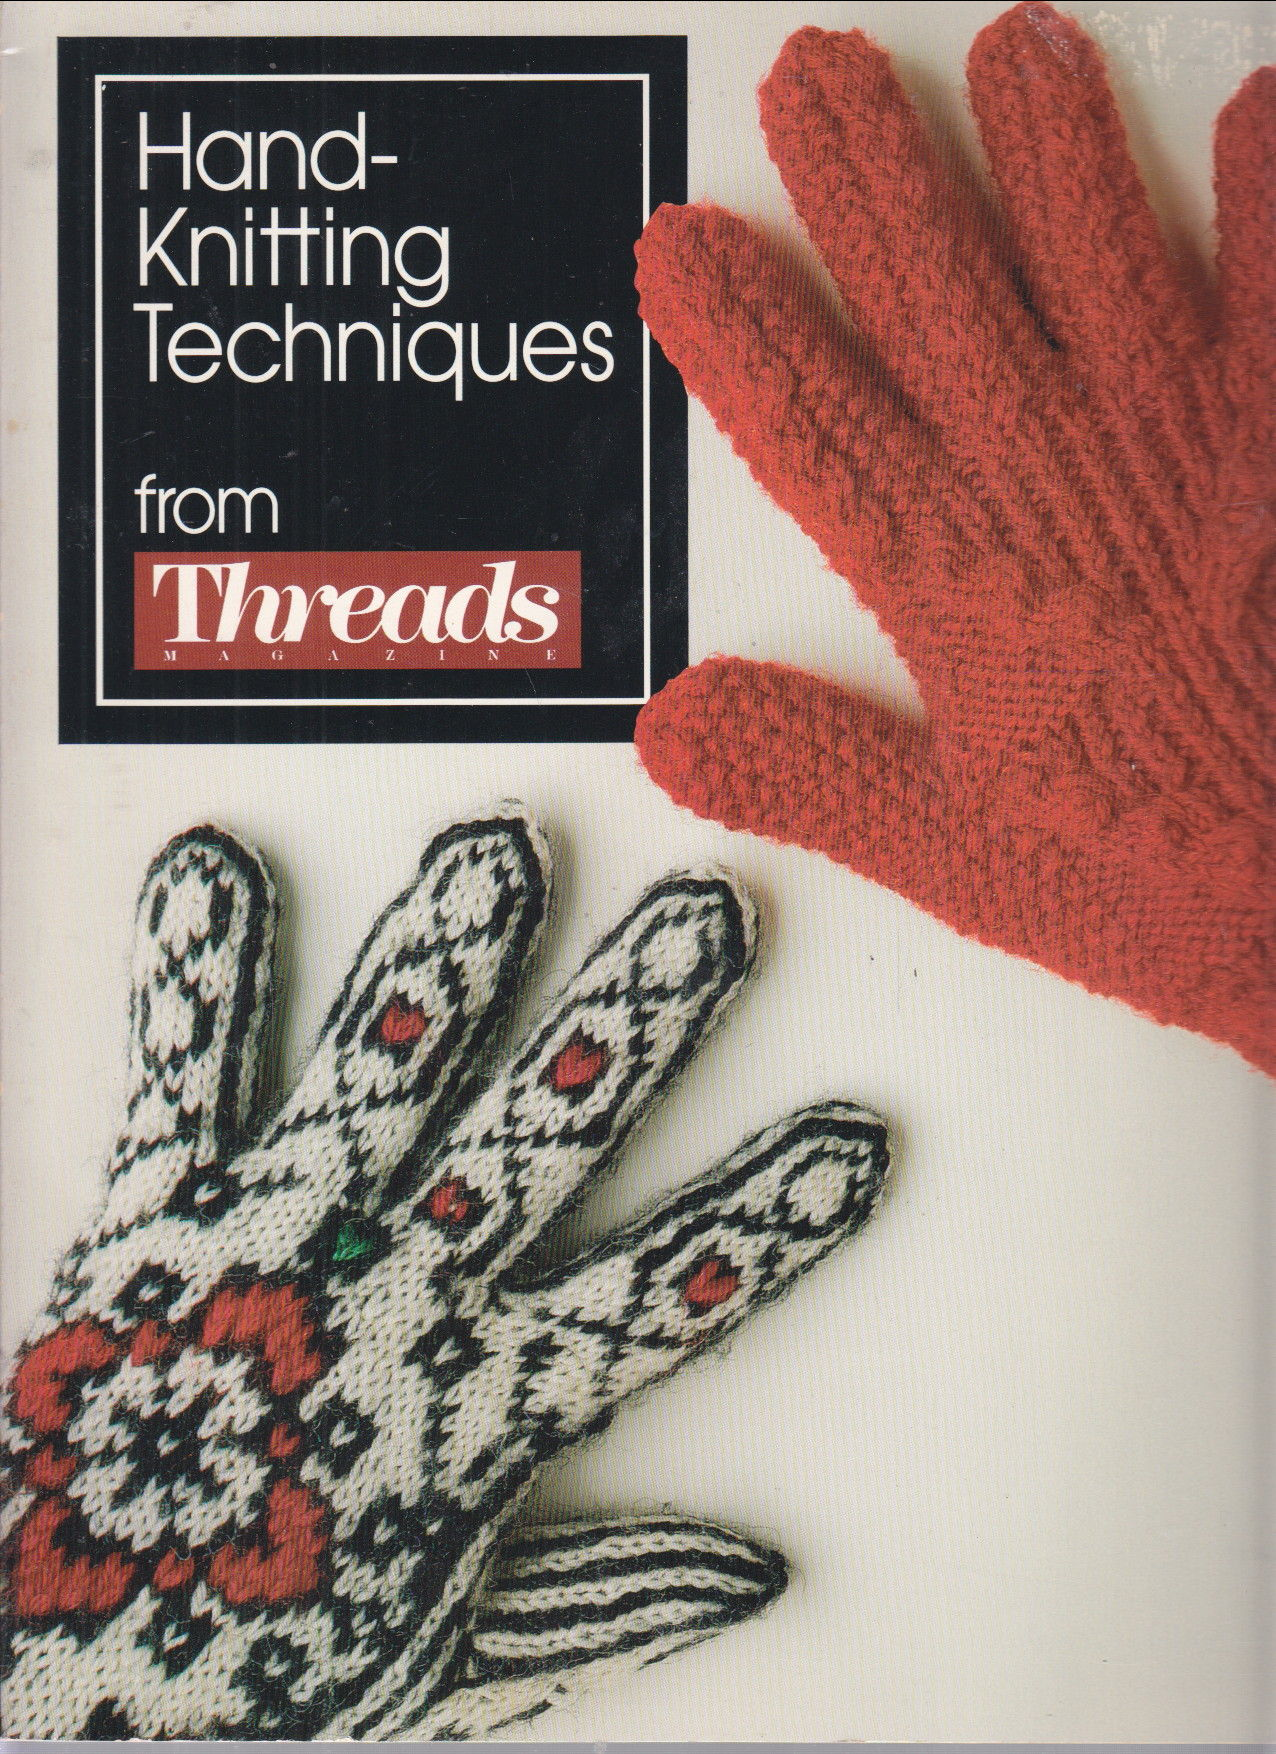 Hand Knitting Techniques : Hand knitting techniques by threads magazines